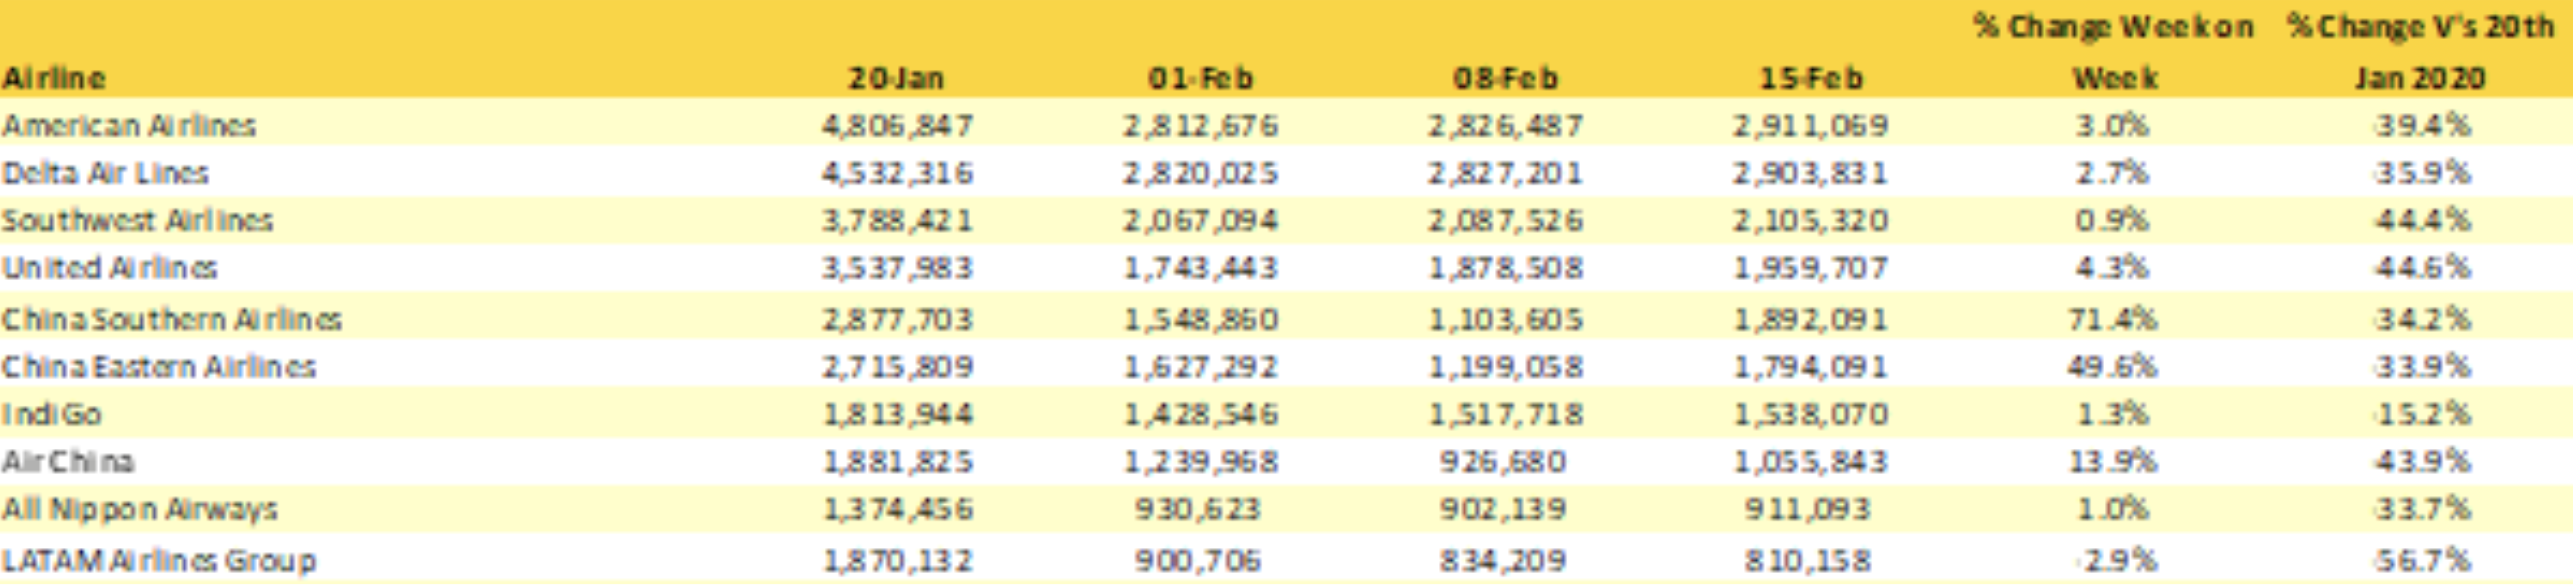 OAG graph showing largest airlines in world over January and February period